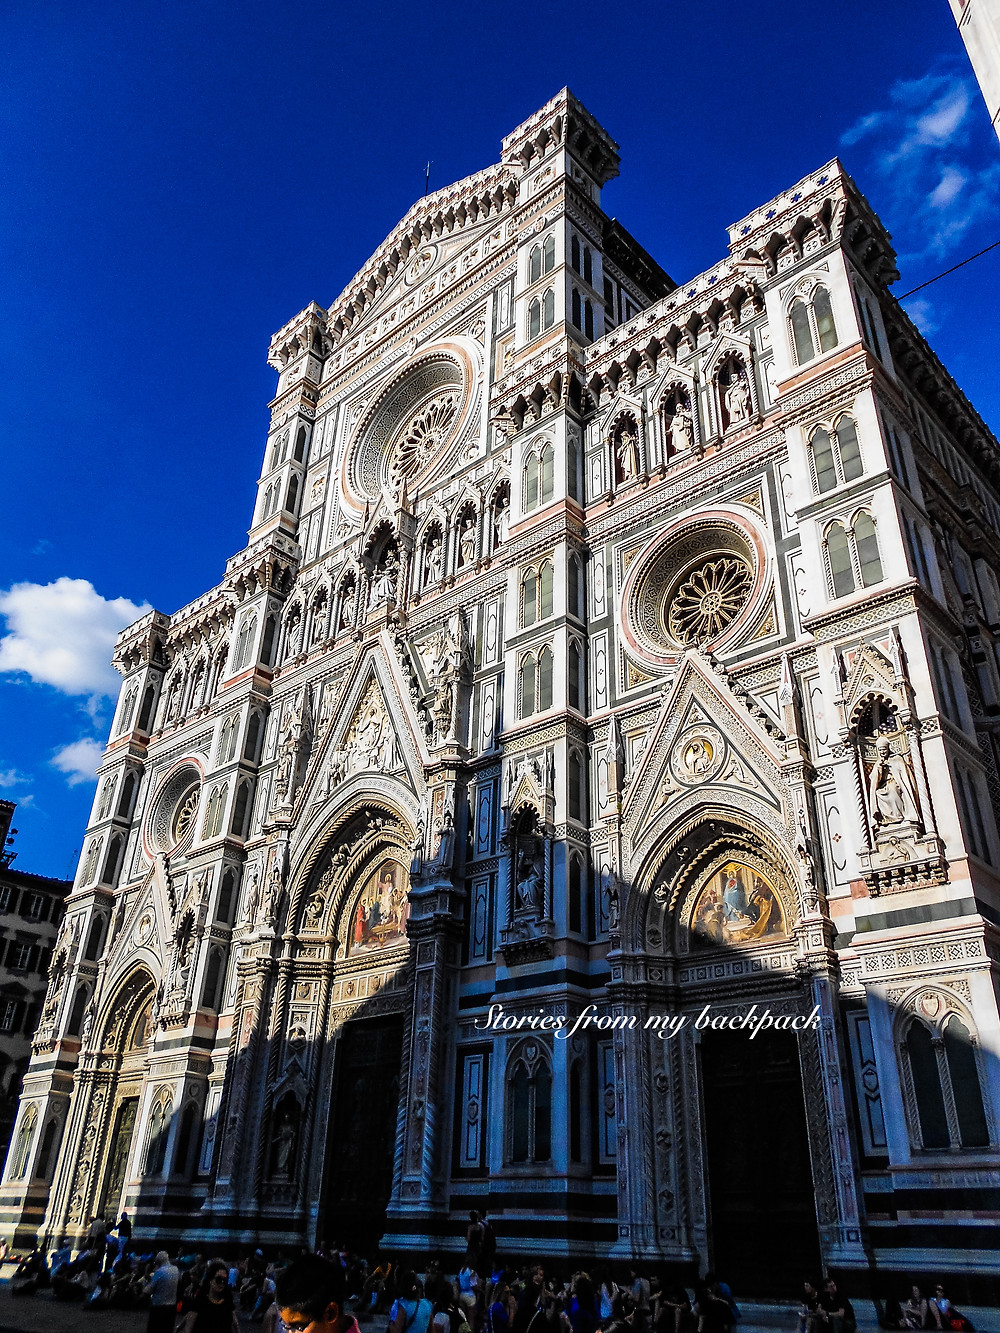 Baptistery of St. John, St. John's Baptistery Entry fee, Florence, Things to do in Florence, Florence sightseeing, Florence architecture, Florence budget sights, best views in Florenc